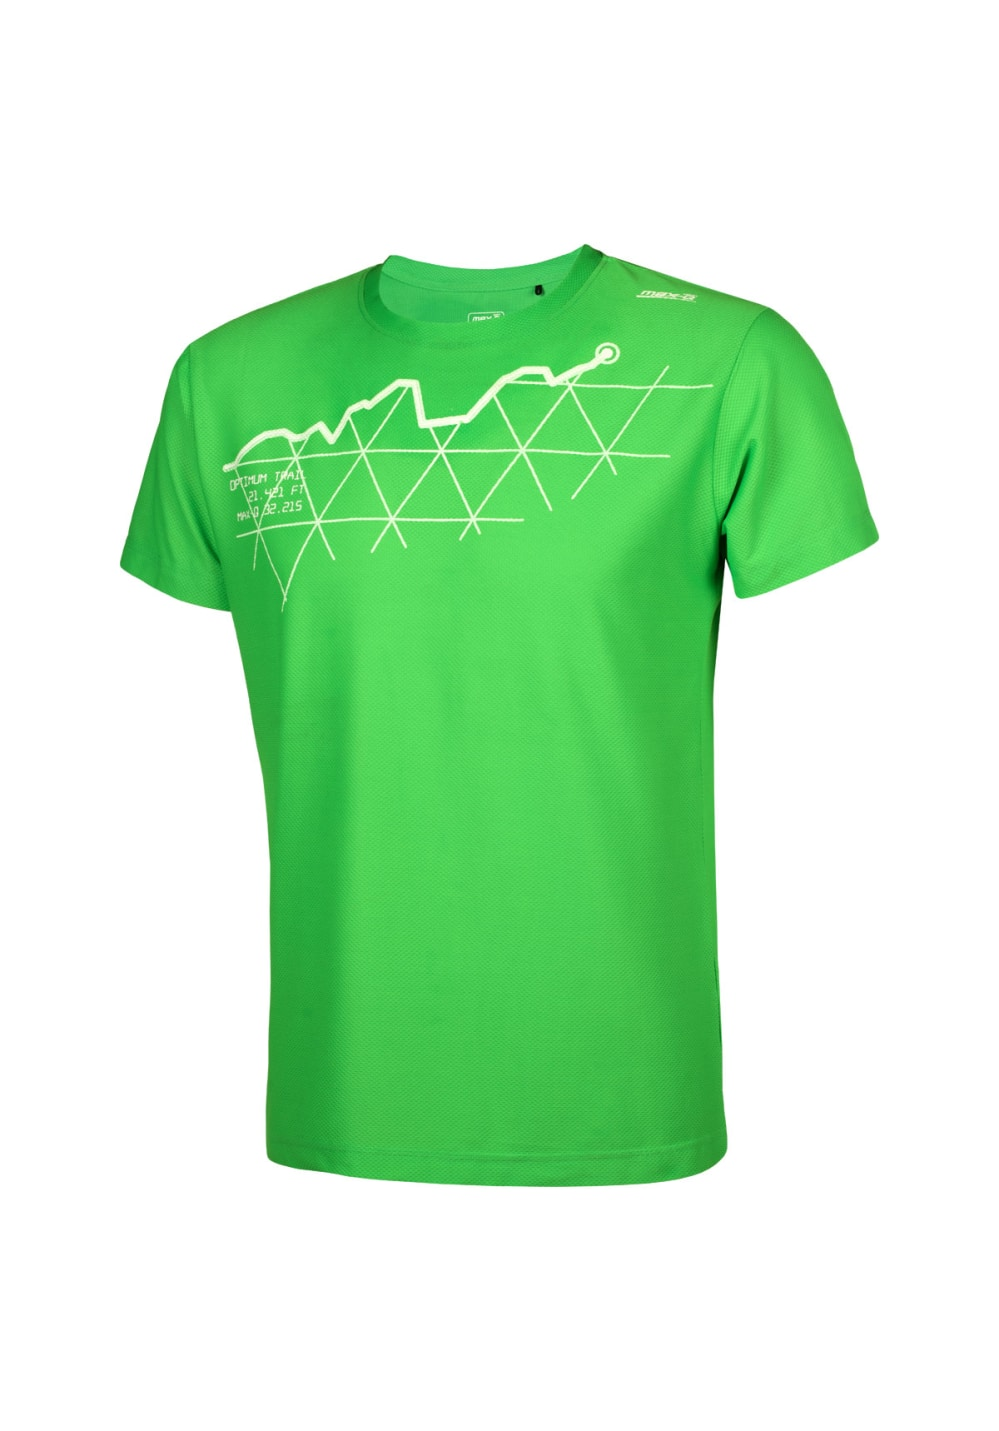 max-Q.com Mountain Run Shirt Hommes Maillot course